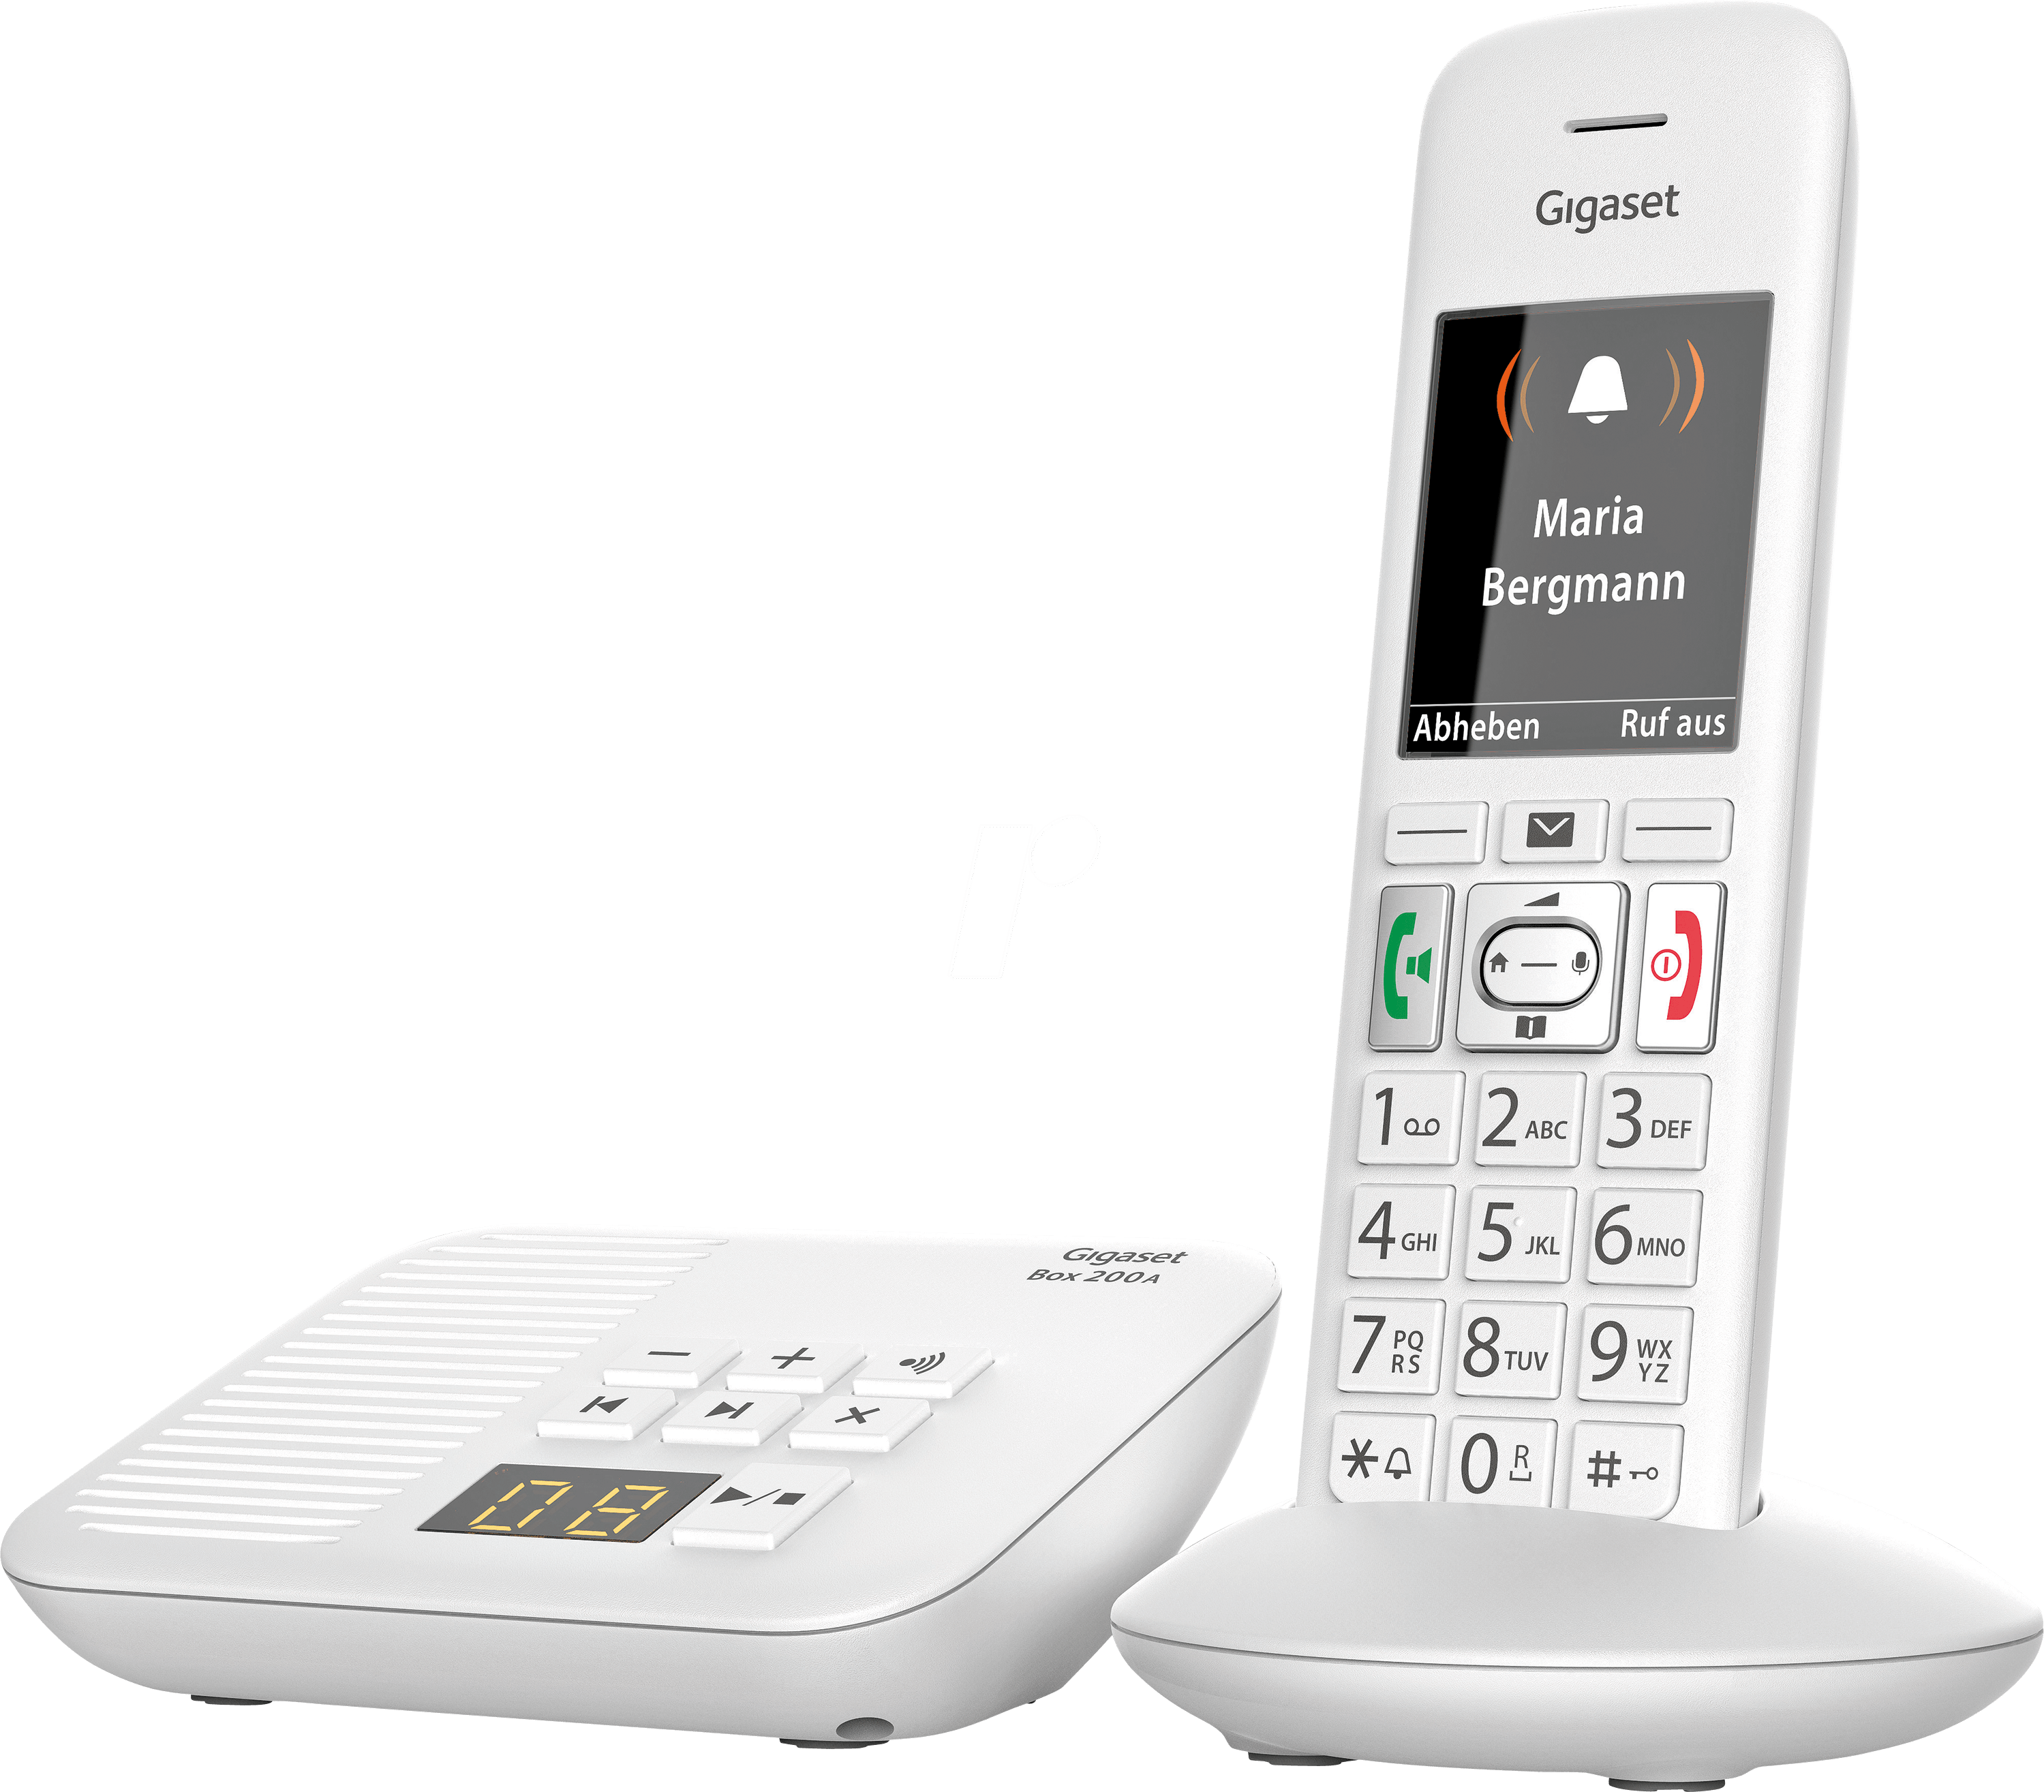 gigaset e370a dect telefon 1 mobilteil mit basis und ab. Black Bedroom Furniture Sets. Home Design Ideas